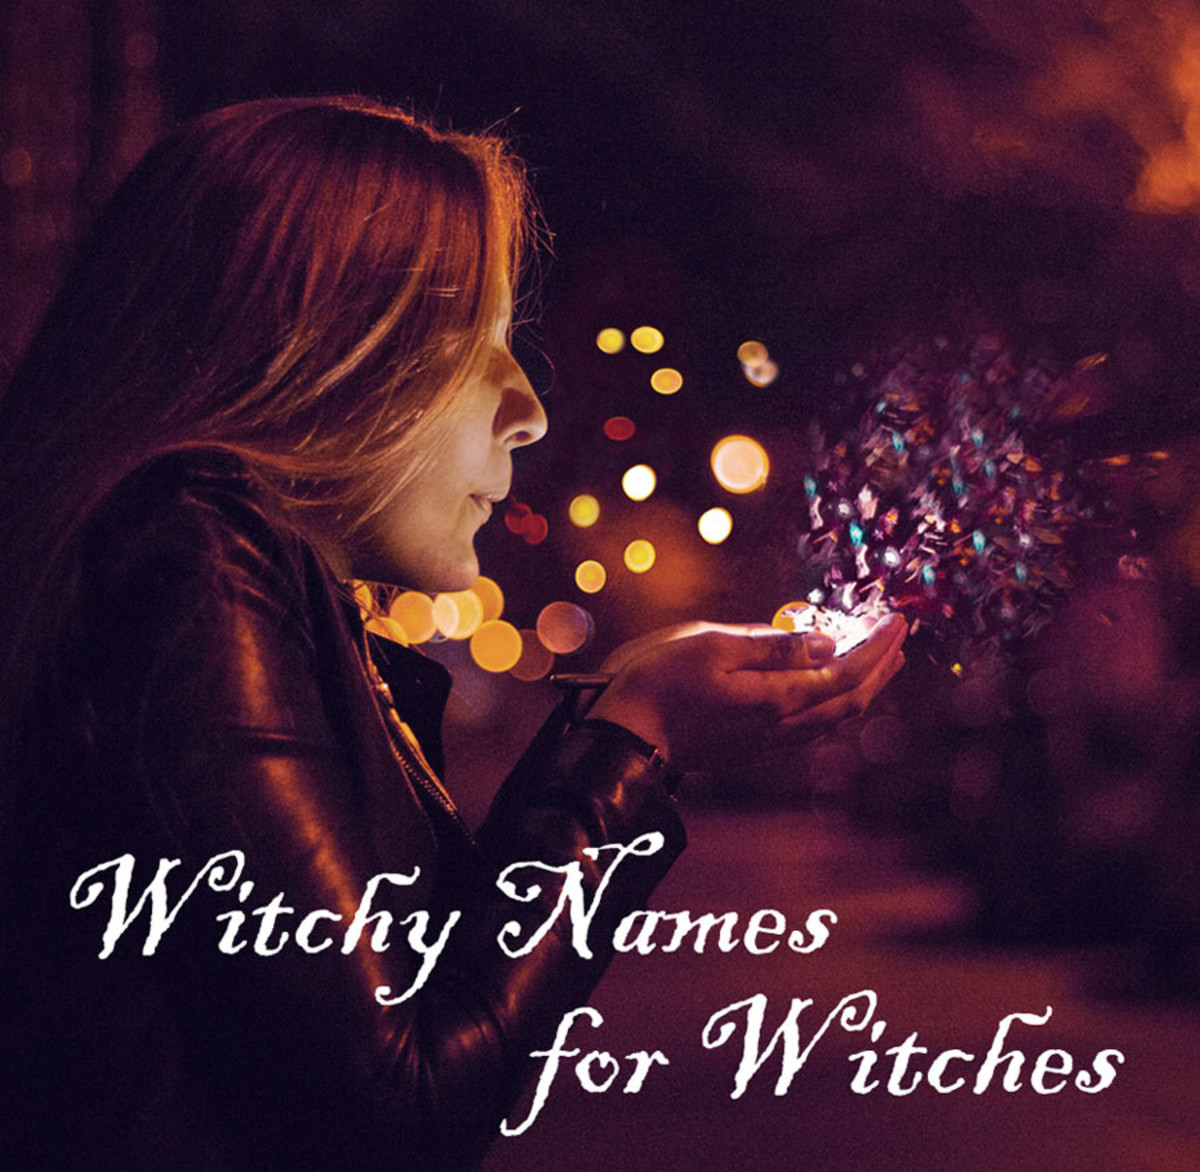 Witchy Names for Witches